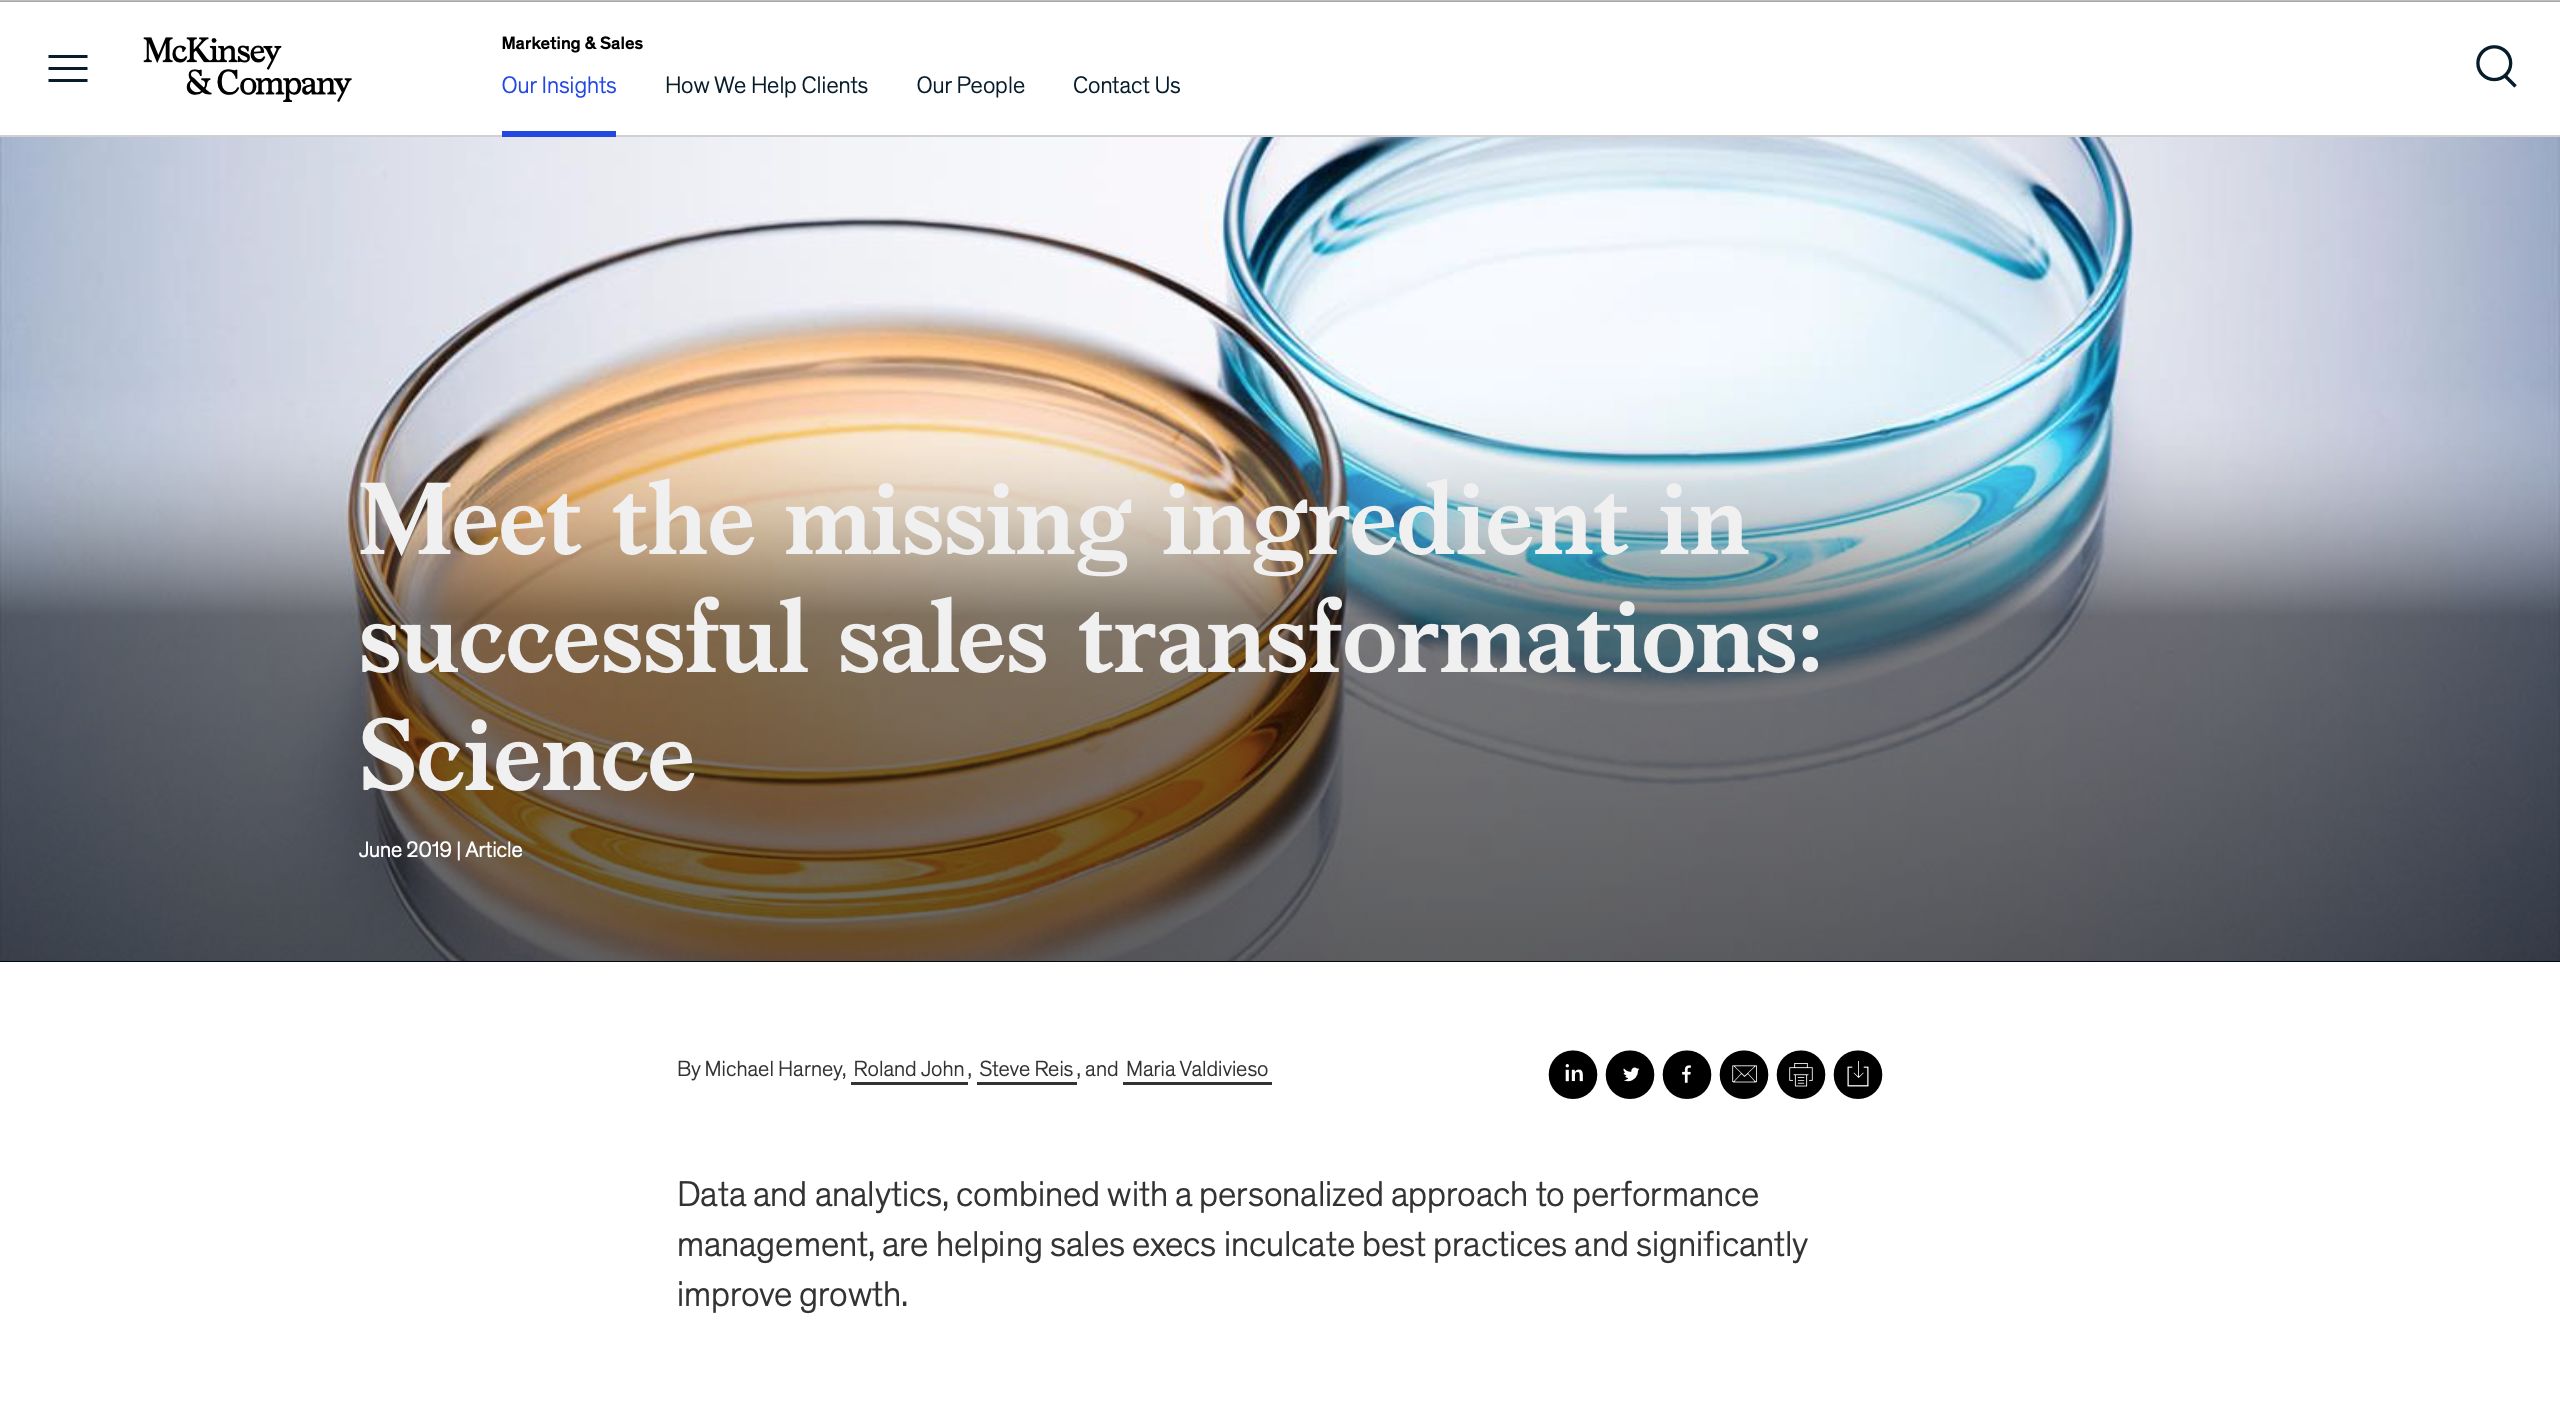 McKinsey blog. Science of sales transformation